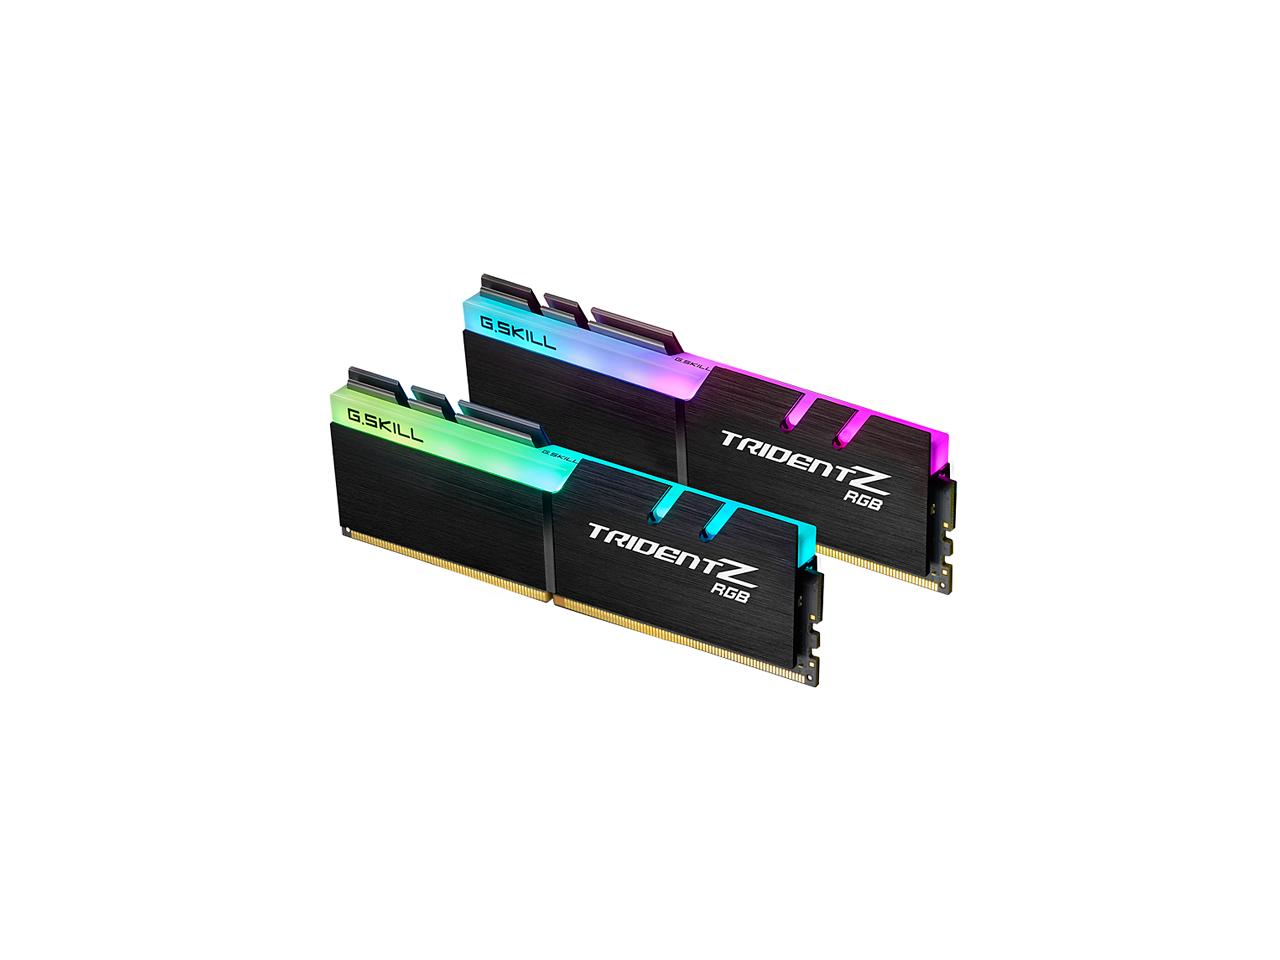 G.SKILL TridentZ RGB Series 16GB (2 x 8GB) 288-Pin DDR4 3200MHz (PC4 25600) Desktop Memory Model F4-3200C14D-16GTZR